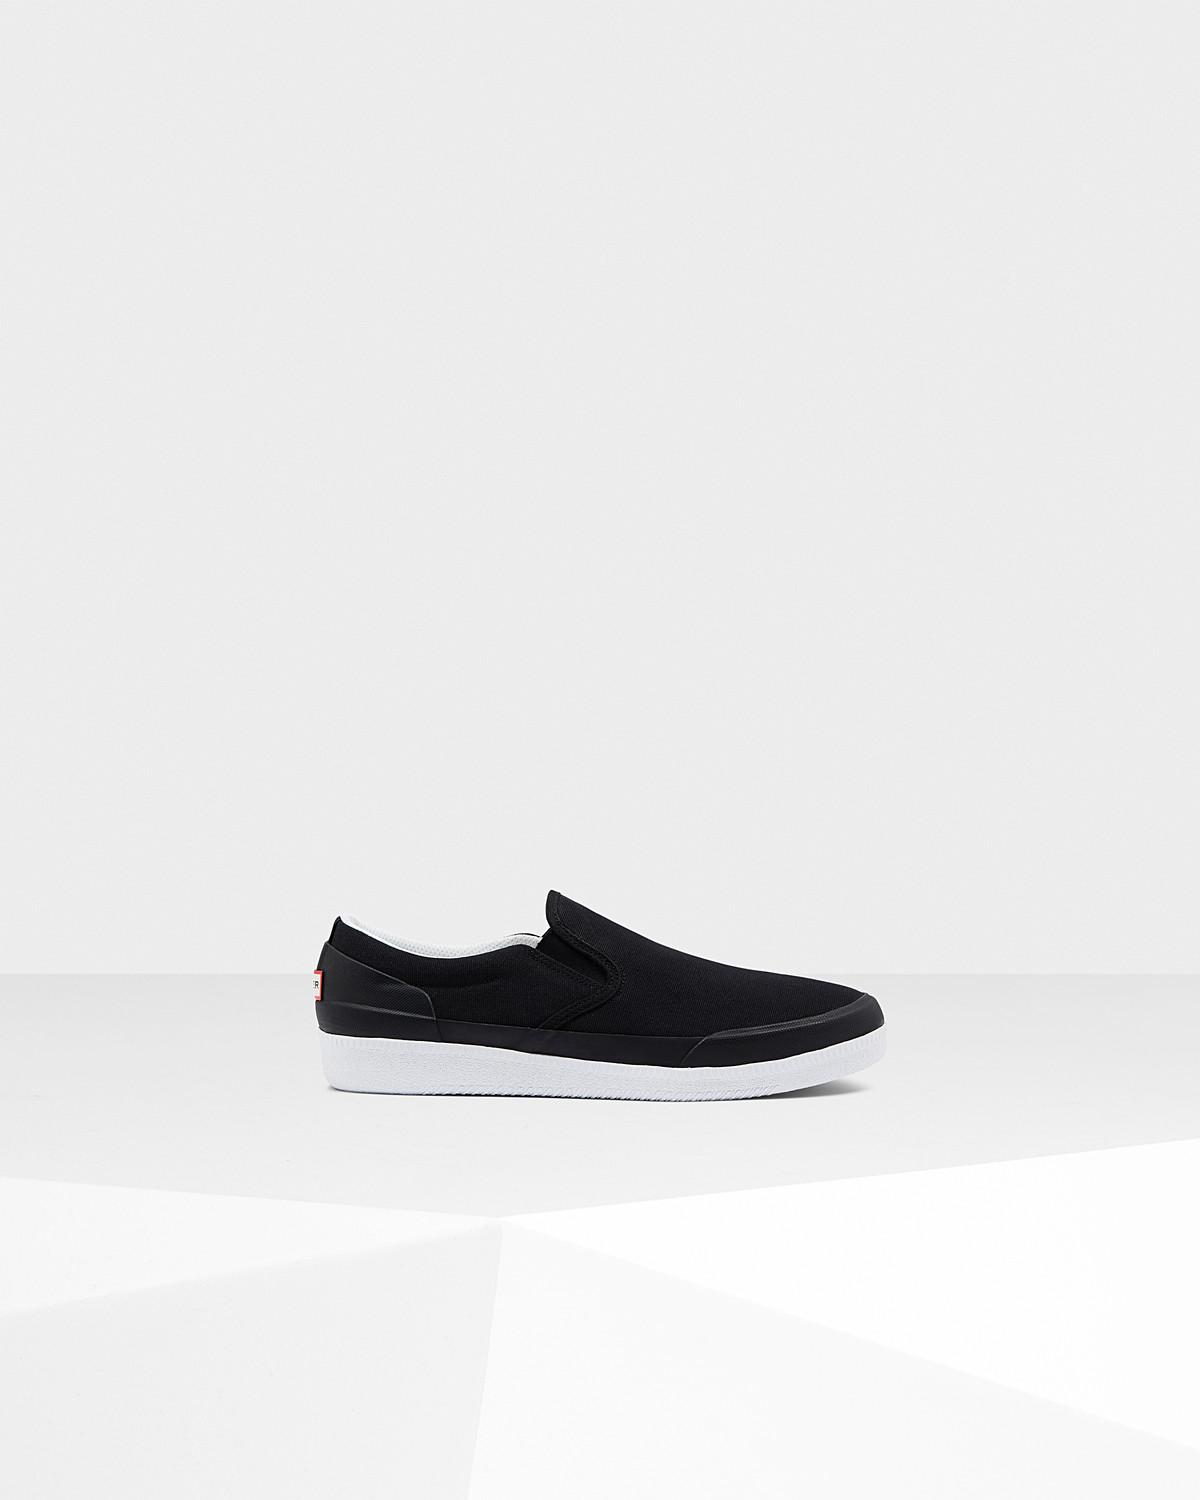 Hunter Original Canvas Plimsole Slip-On Sneaker q5bgg